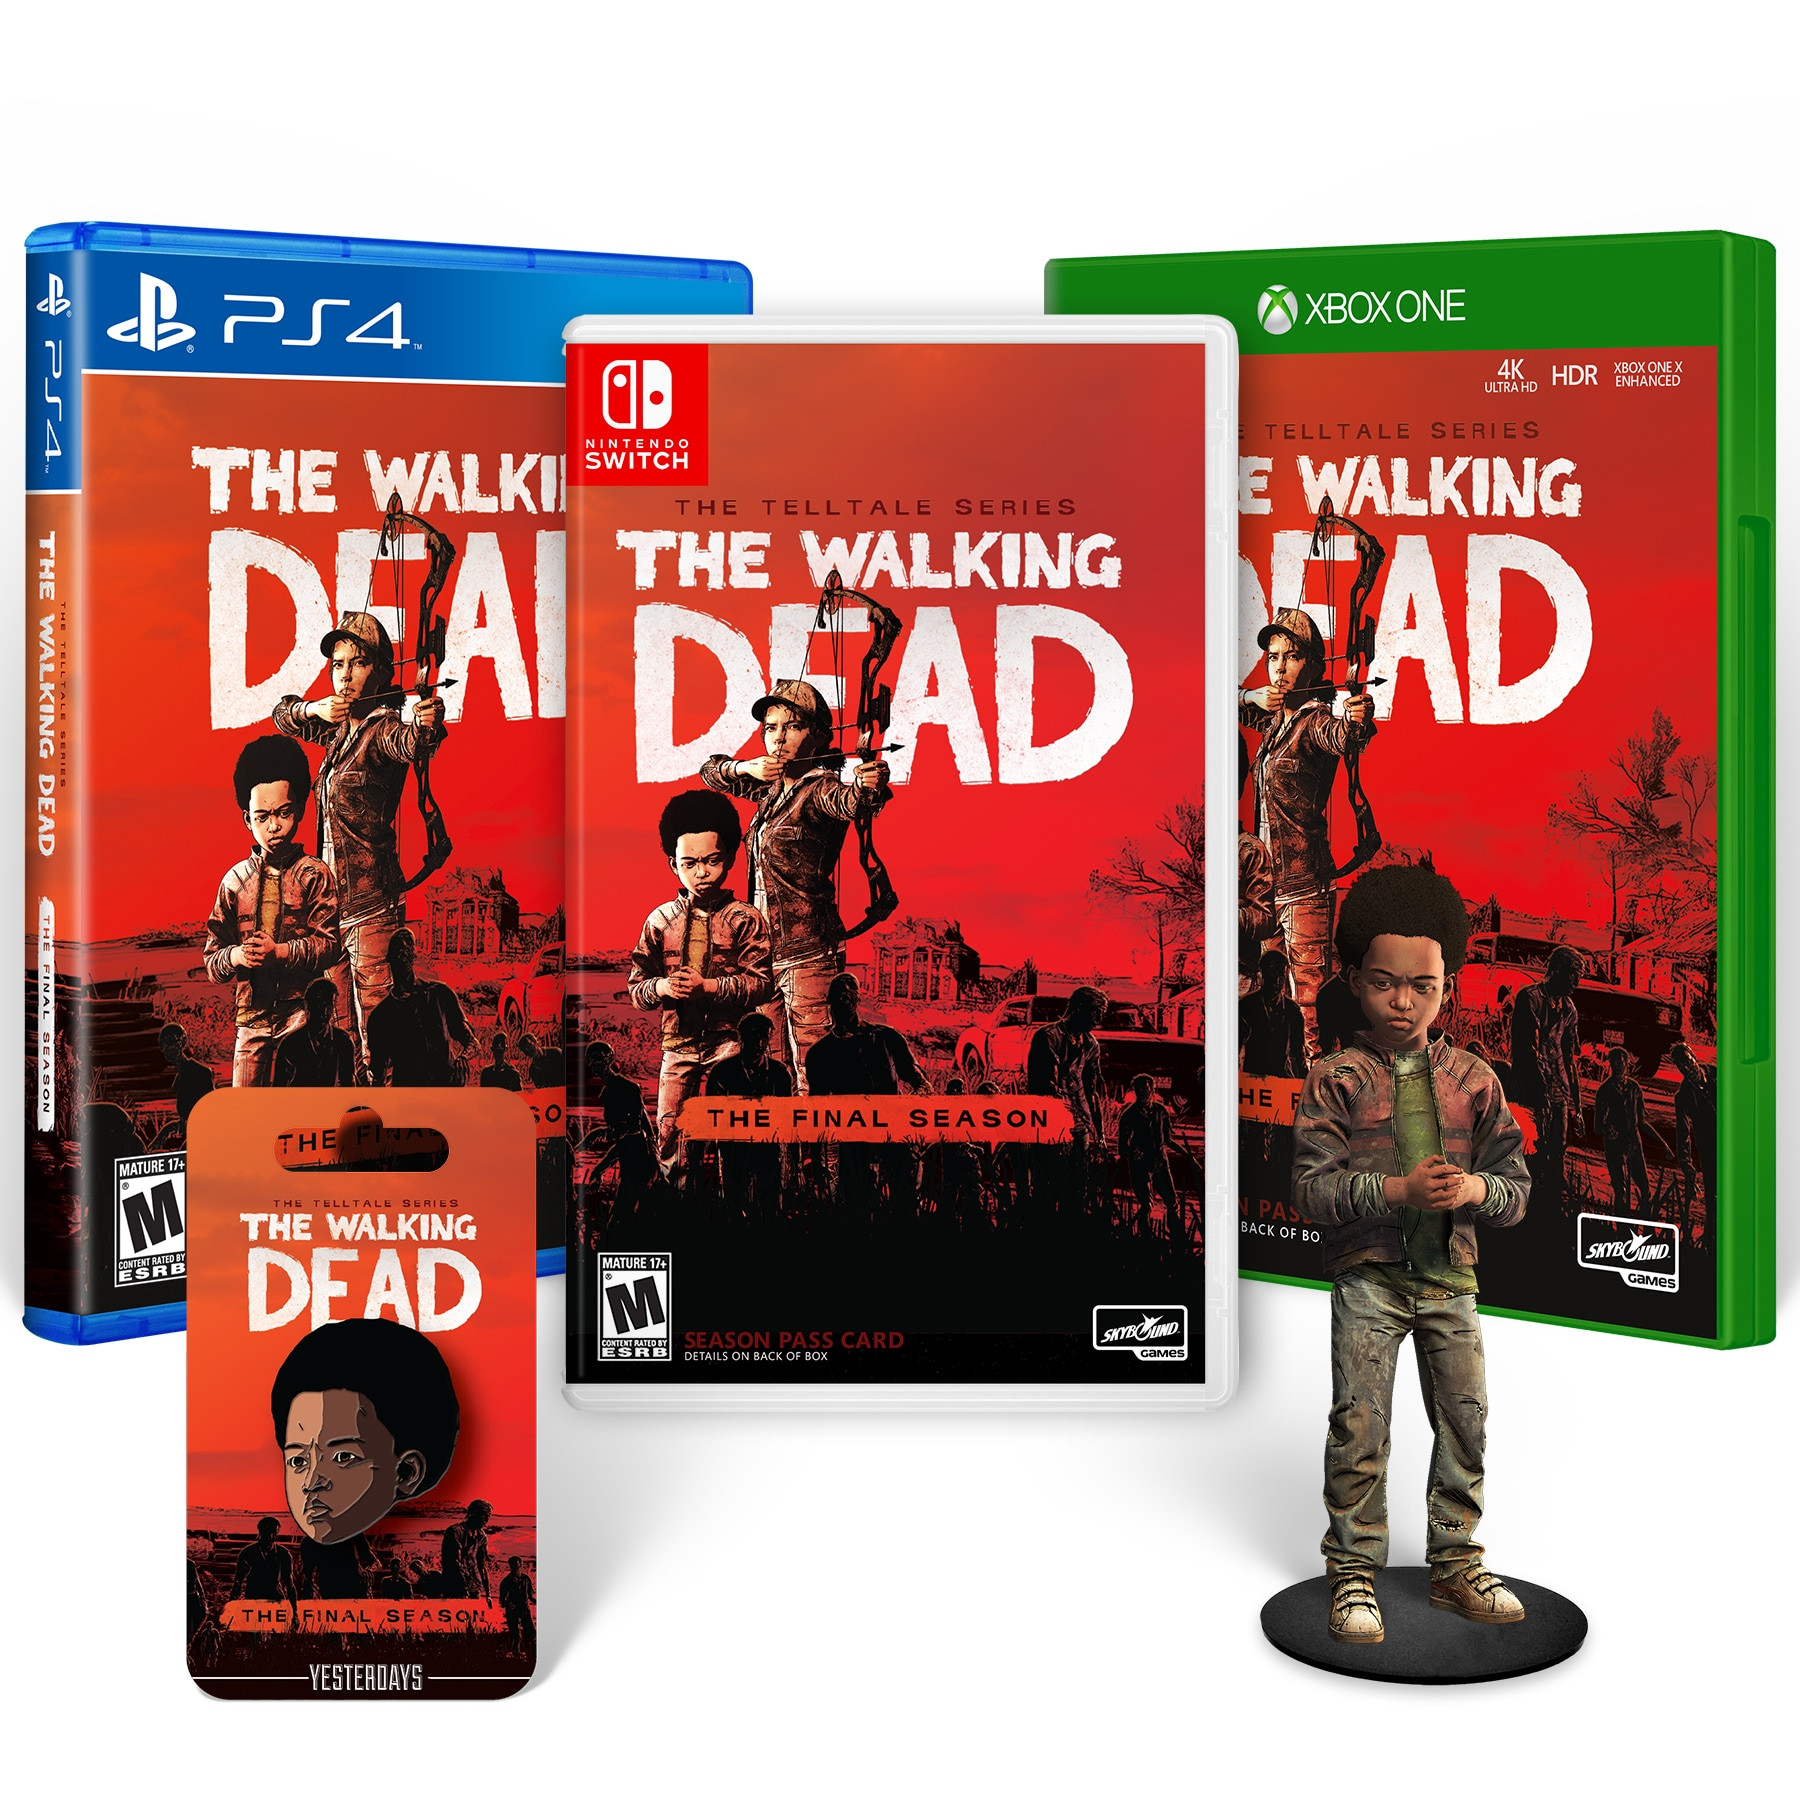 The Walking Dead Final Season CE